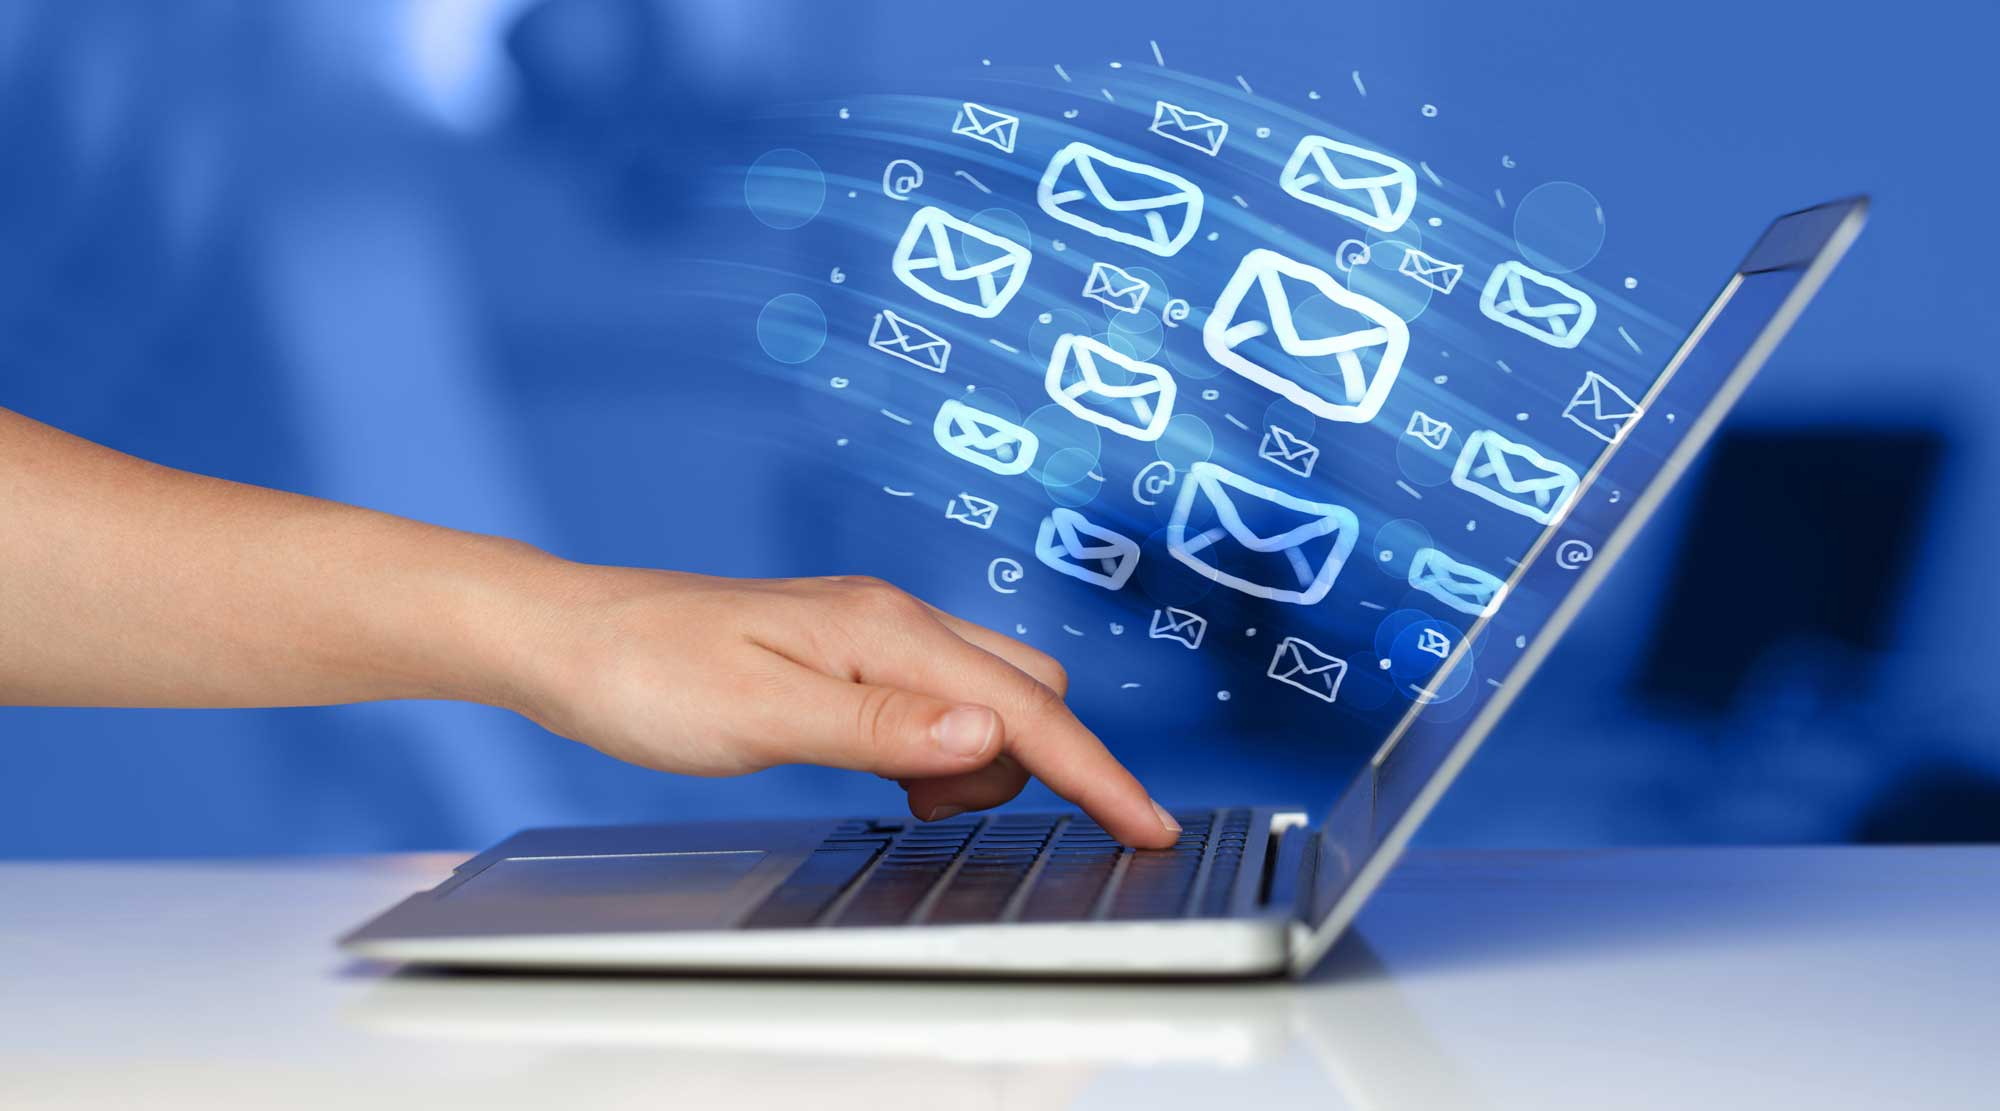 Email-Marketing-Hand-Computer-Emails